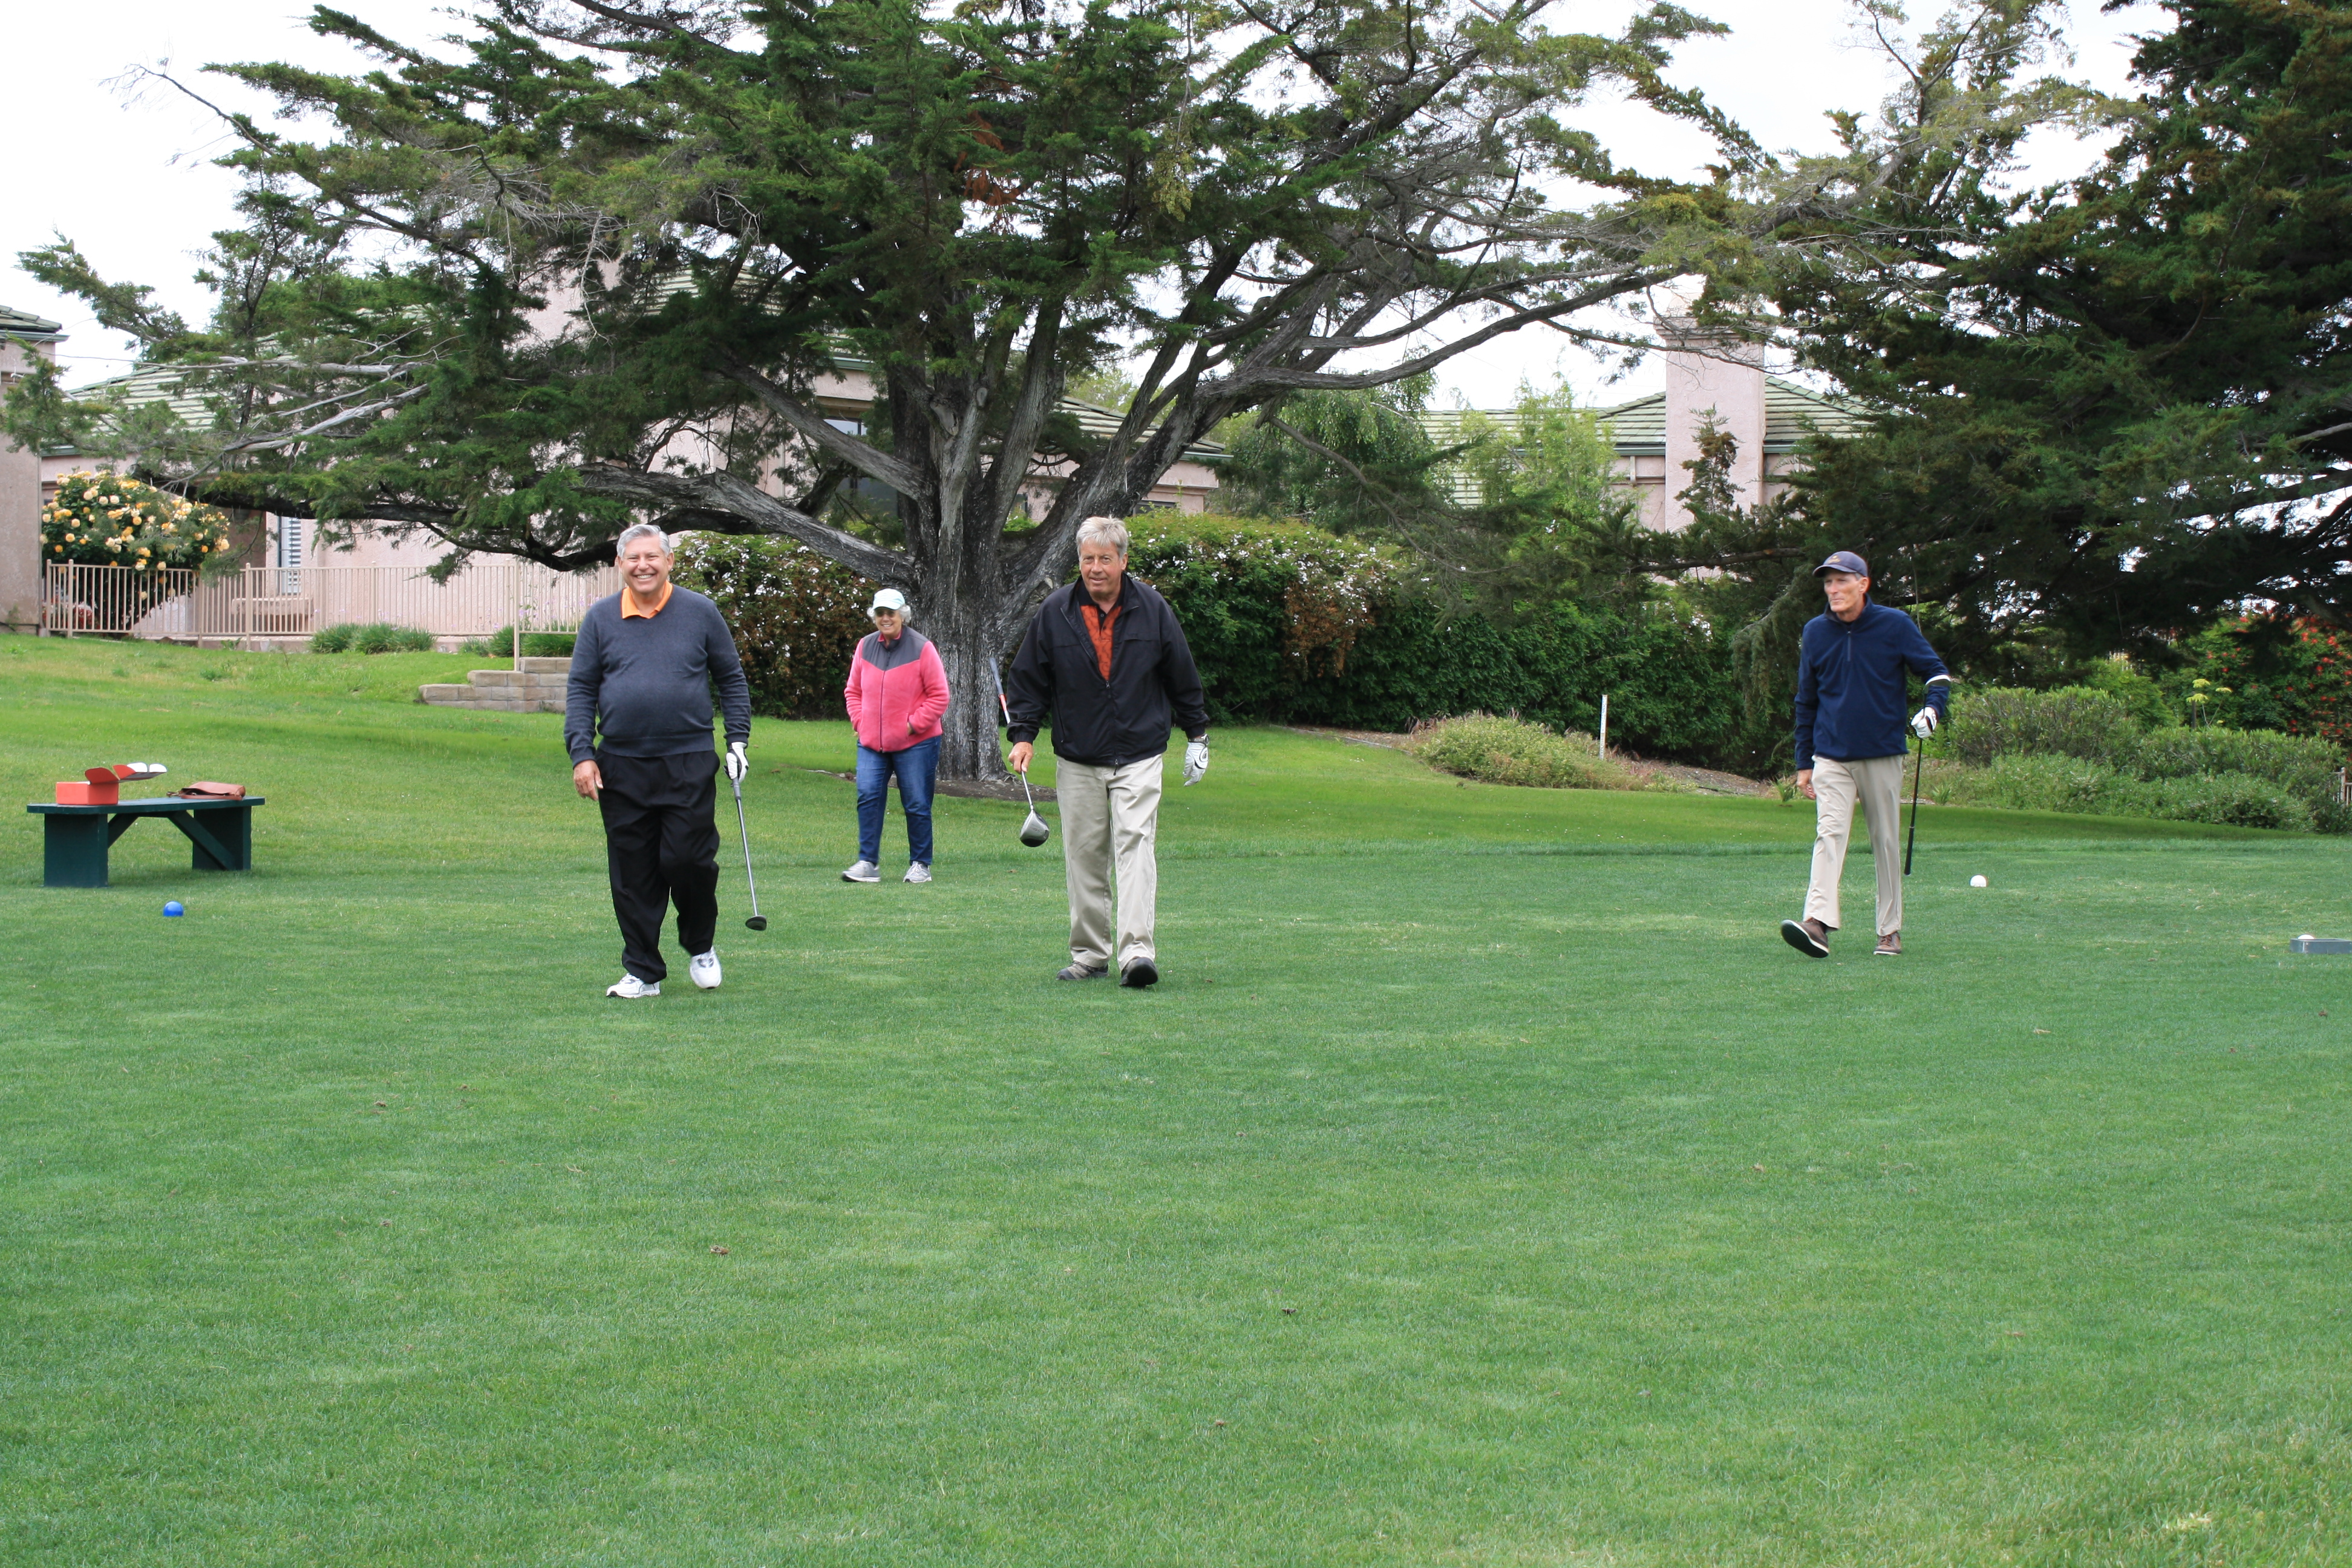 Pismo Beach-Five Cities Rotary Club Foundation Golf Classic gallery image #13